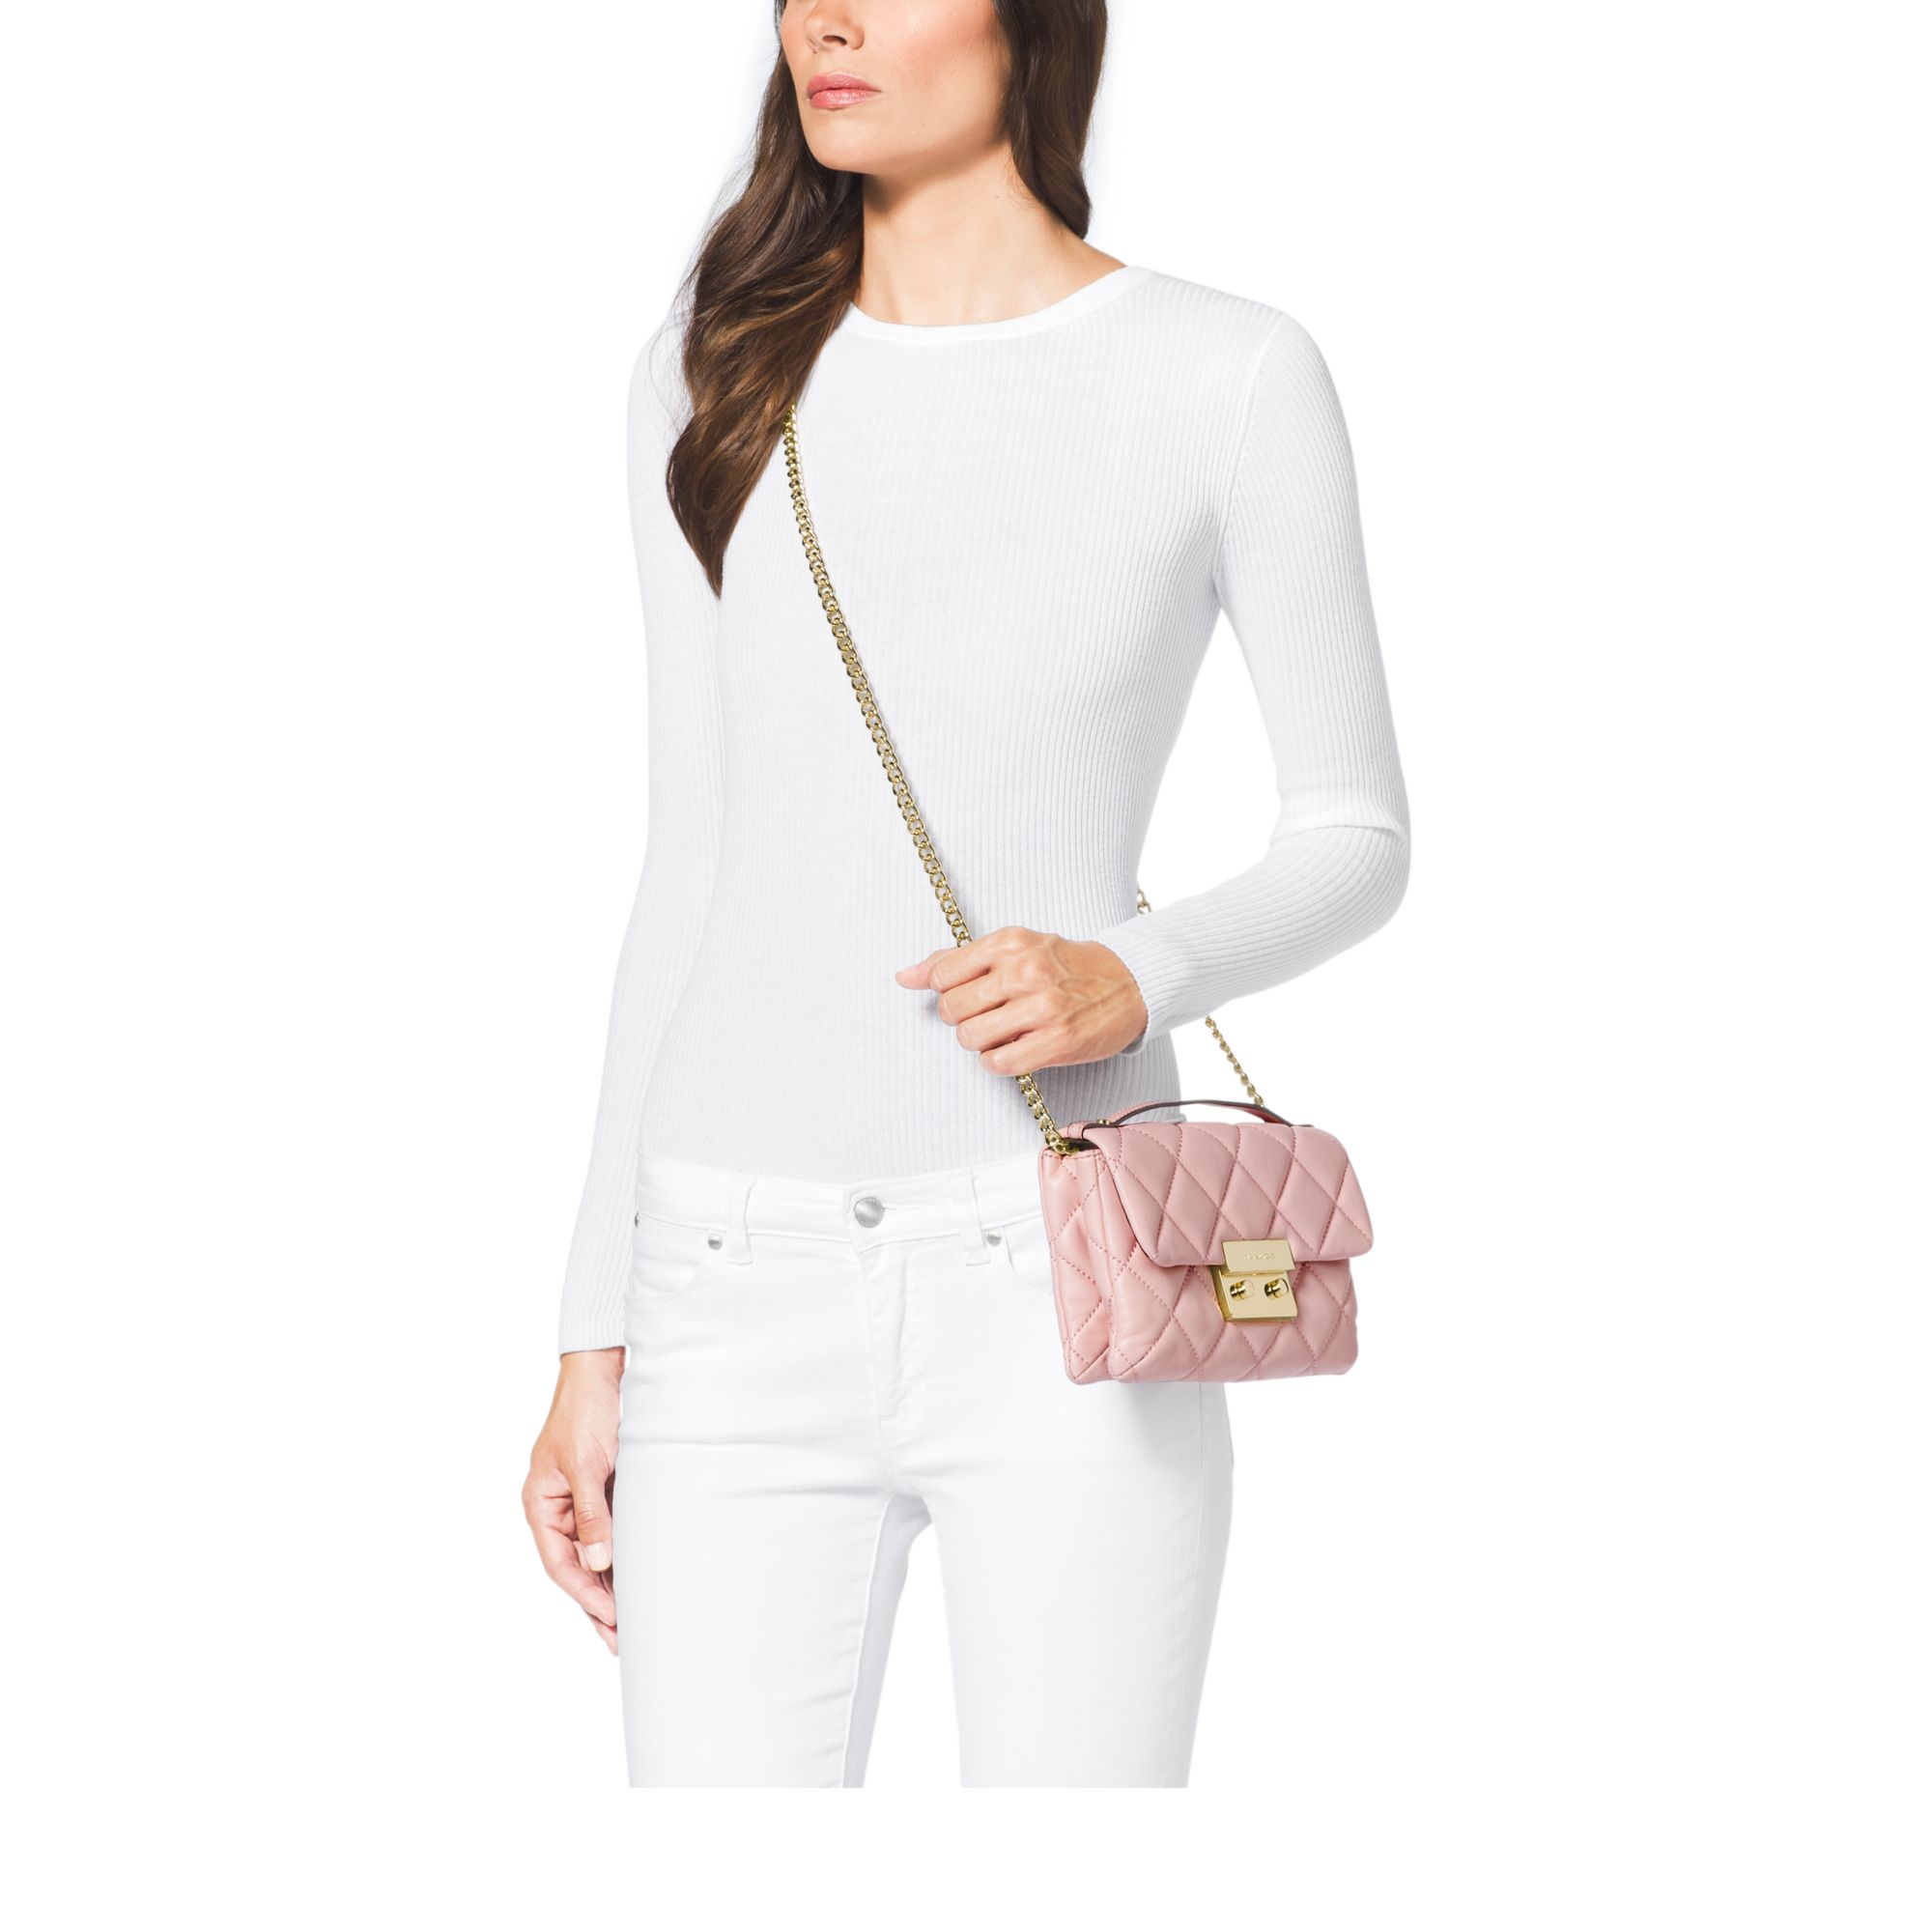 19eac8694d94 Lyst - Michael Kors Sloan Small Quilted Cross-Body Bag in Pink